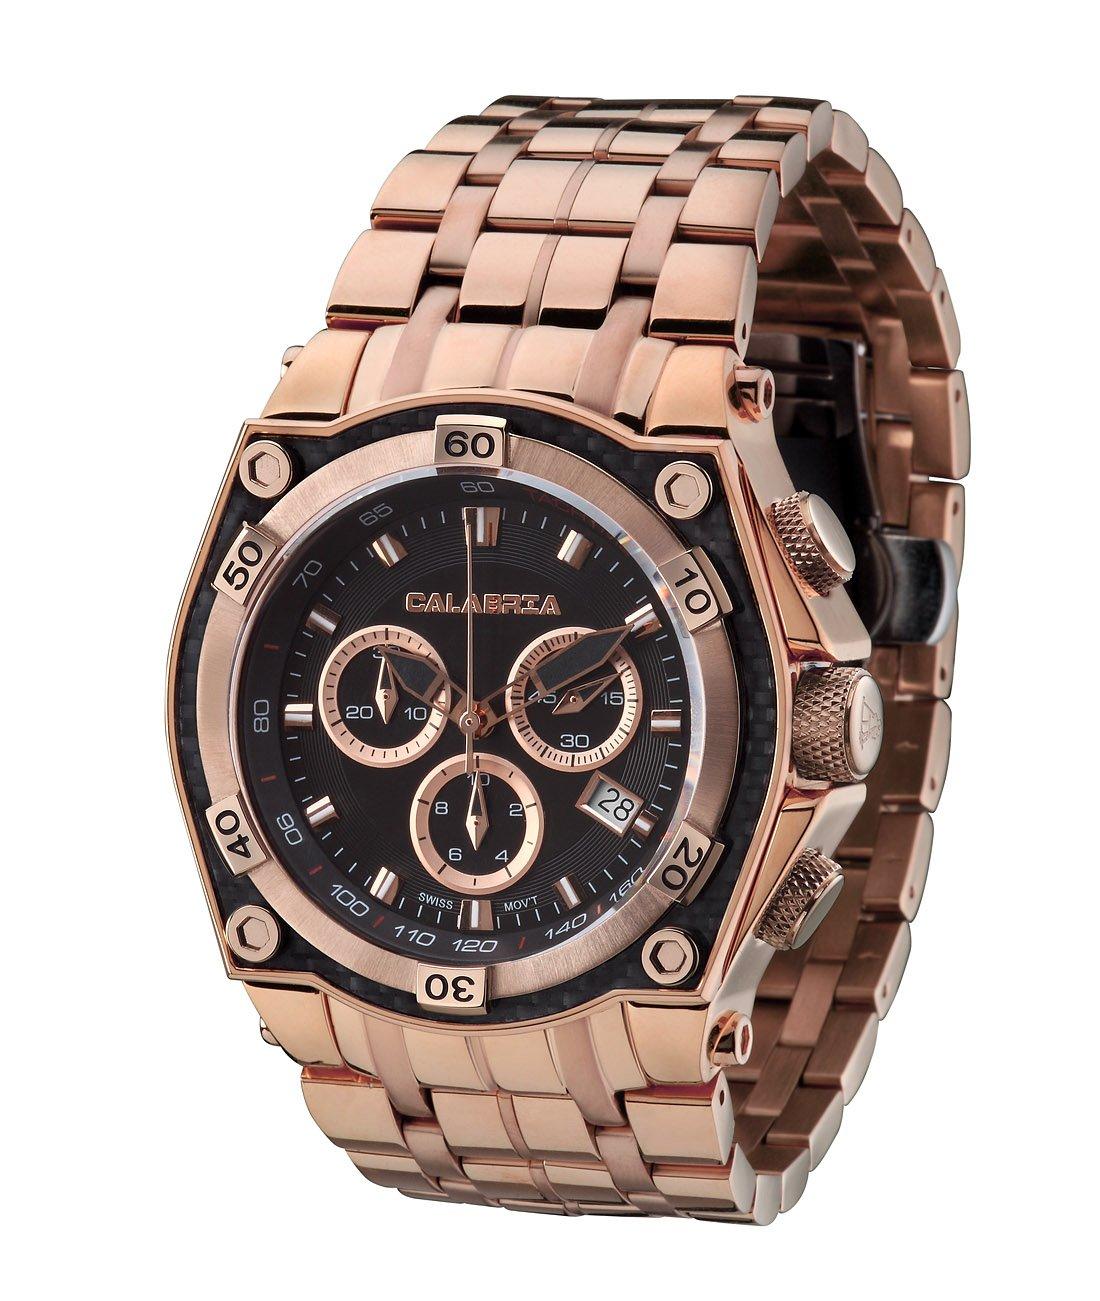 CALABRIA - MEZZANOTTE - Classic Rose Gold Chronograph Men's Watch with Carbon Fiber Bezel by Calabria